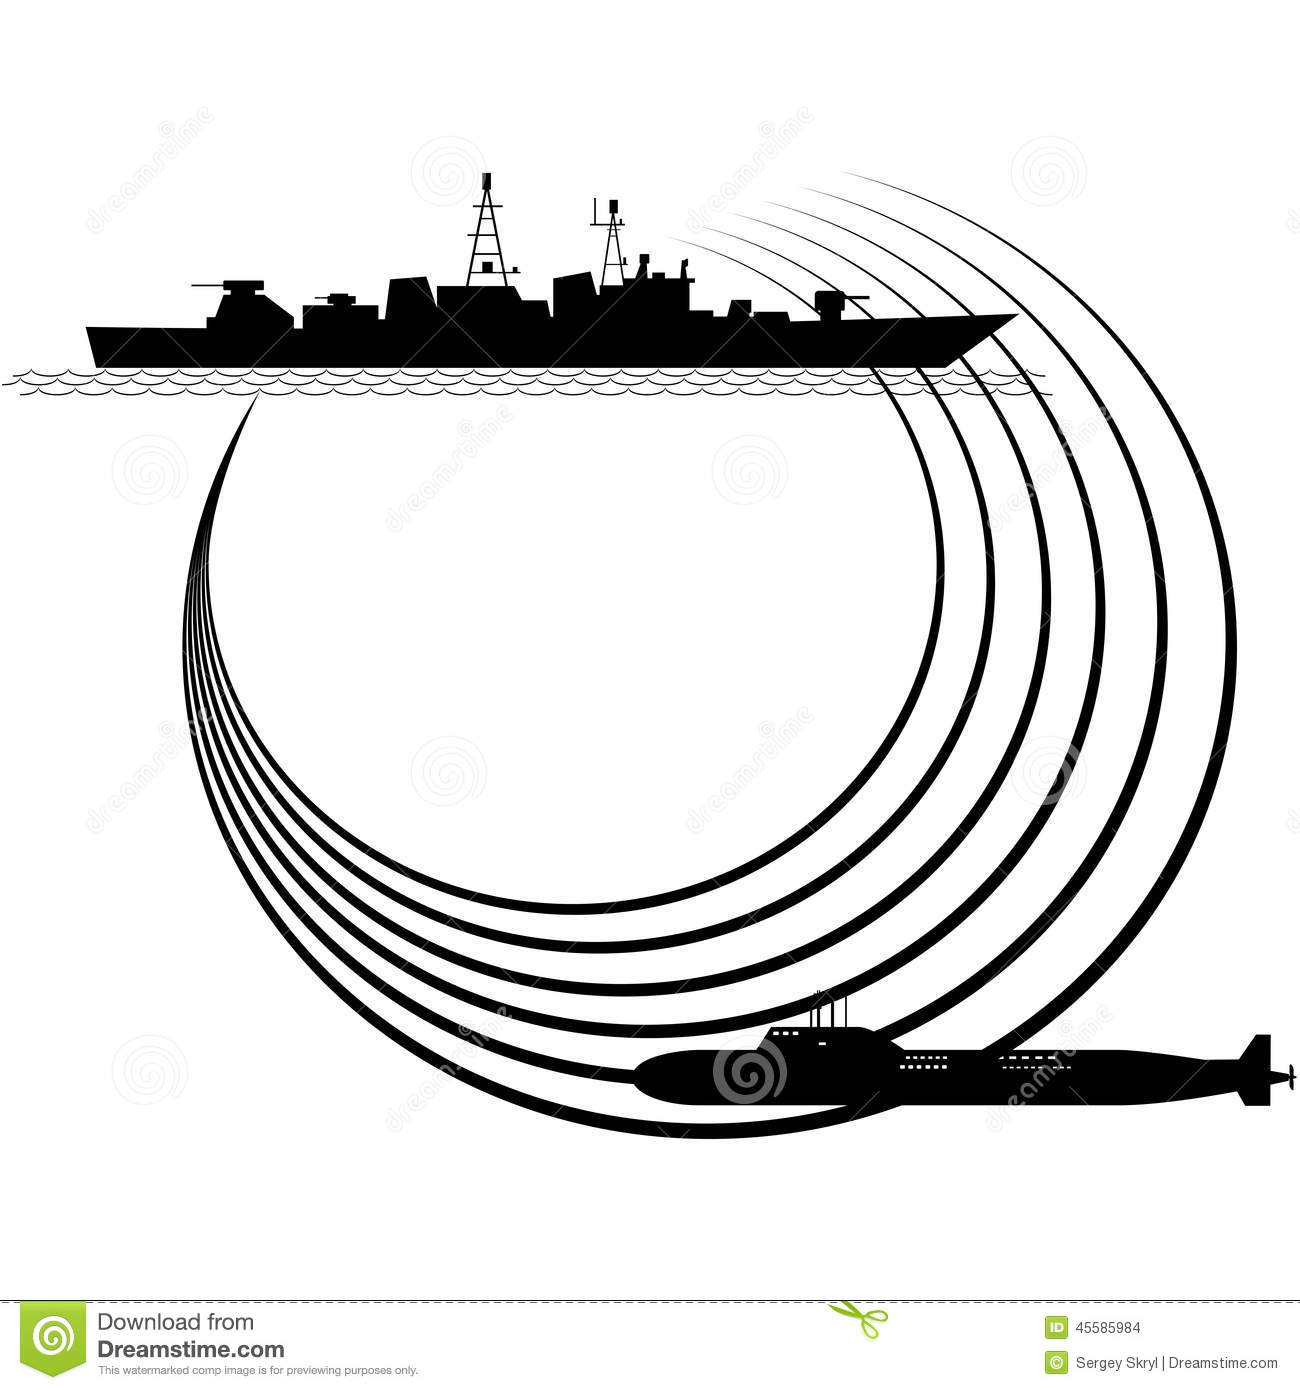 Sonar Stock Vector